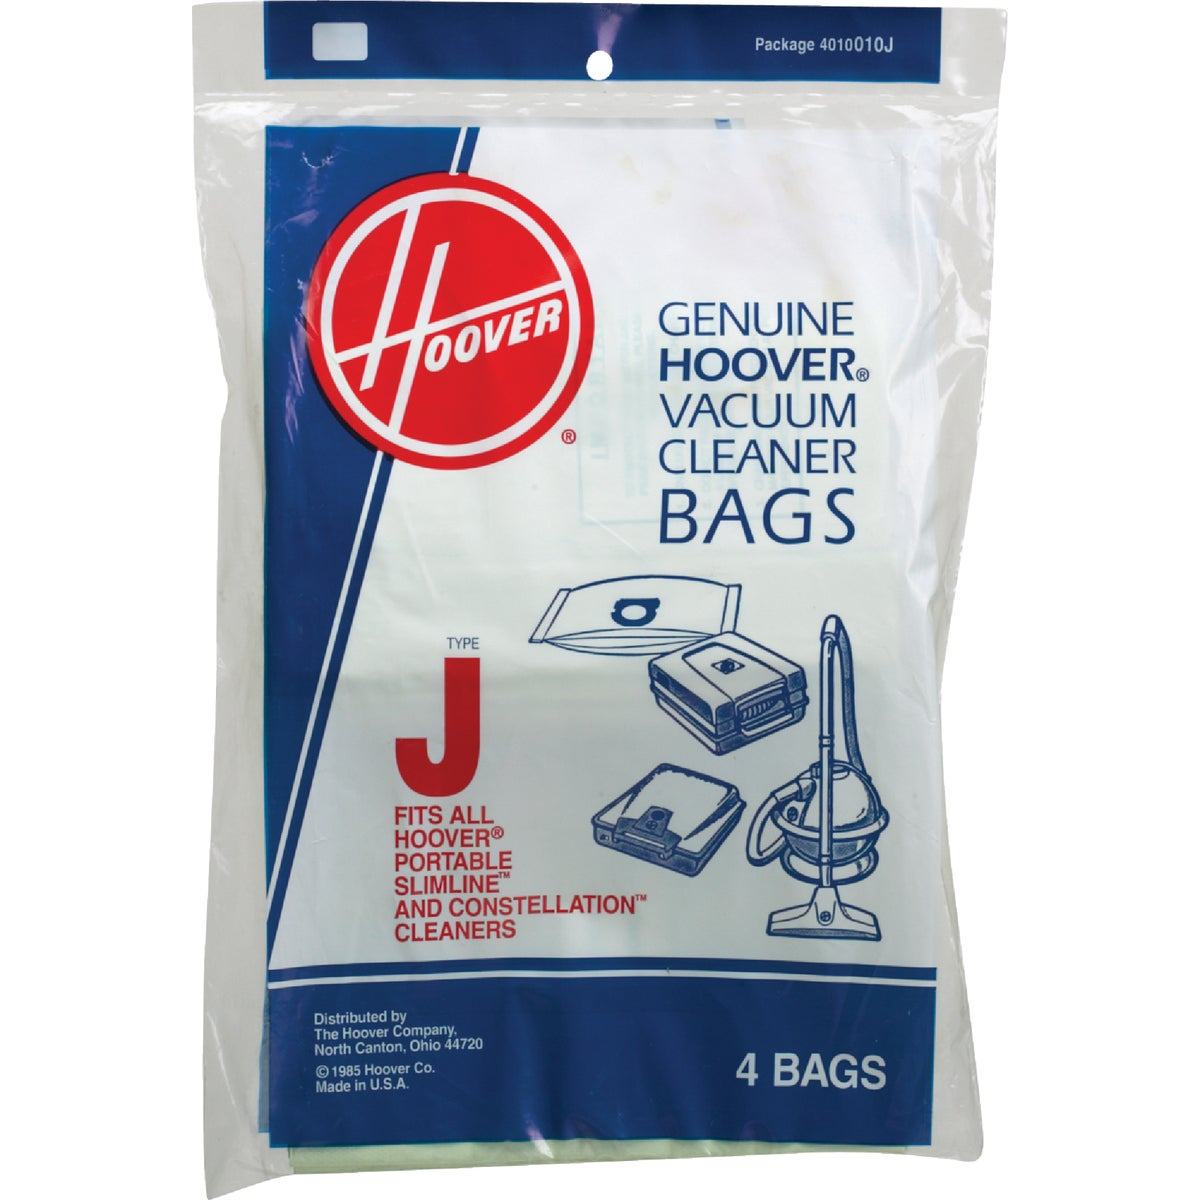 TYPE J VAC CLEANER BAG - 4010010J by Hoover Co